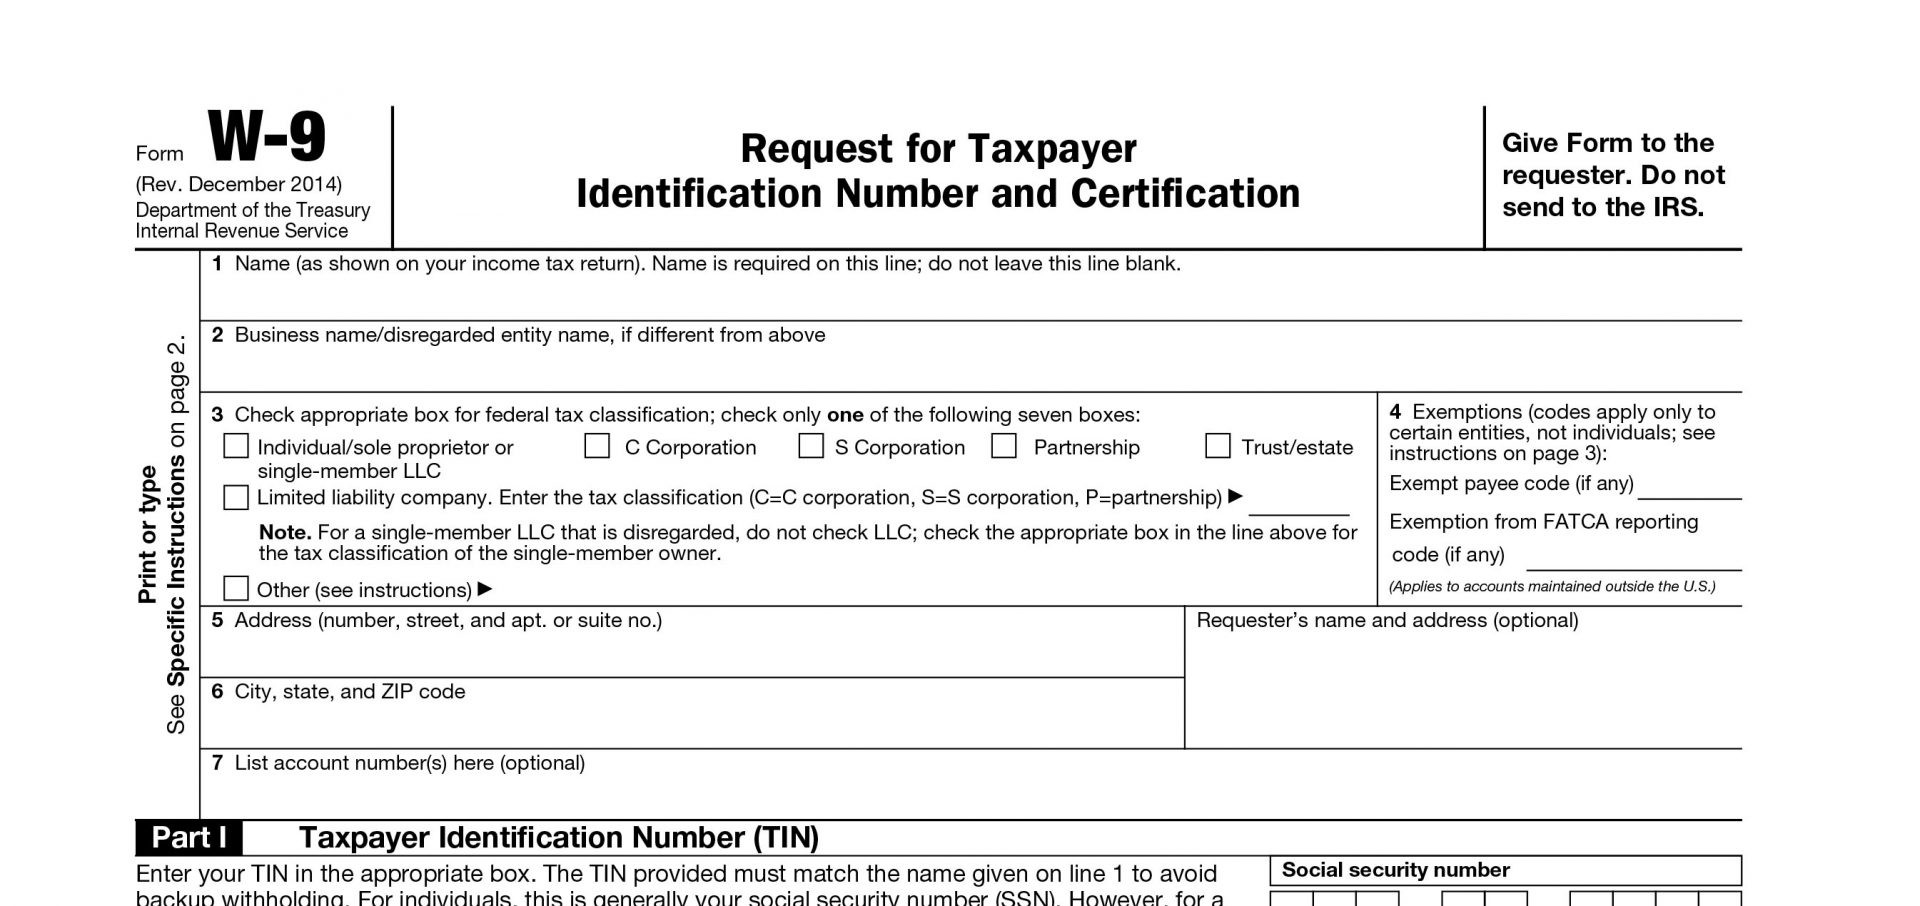 Printable Irs W-9 Blank 2019 - 2020 For Free Use-Blank 2020 W 9